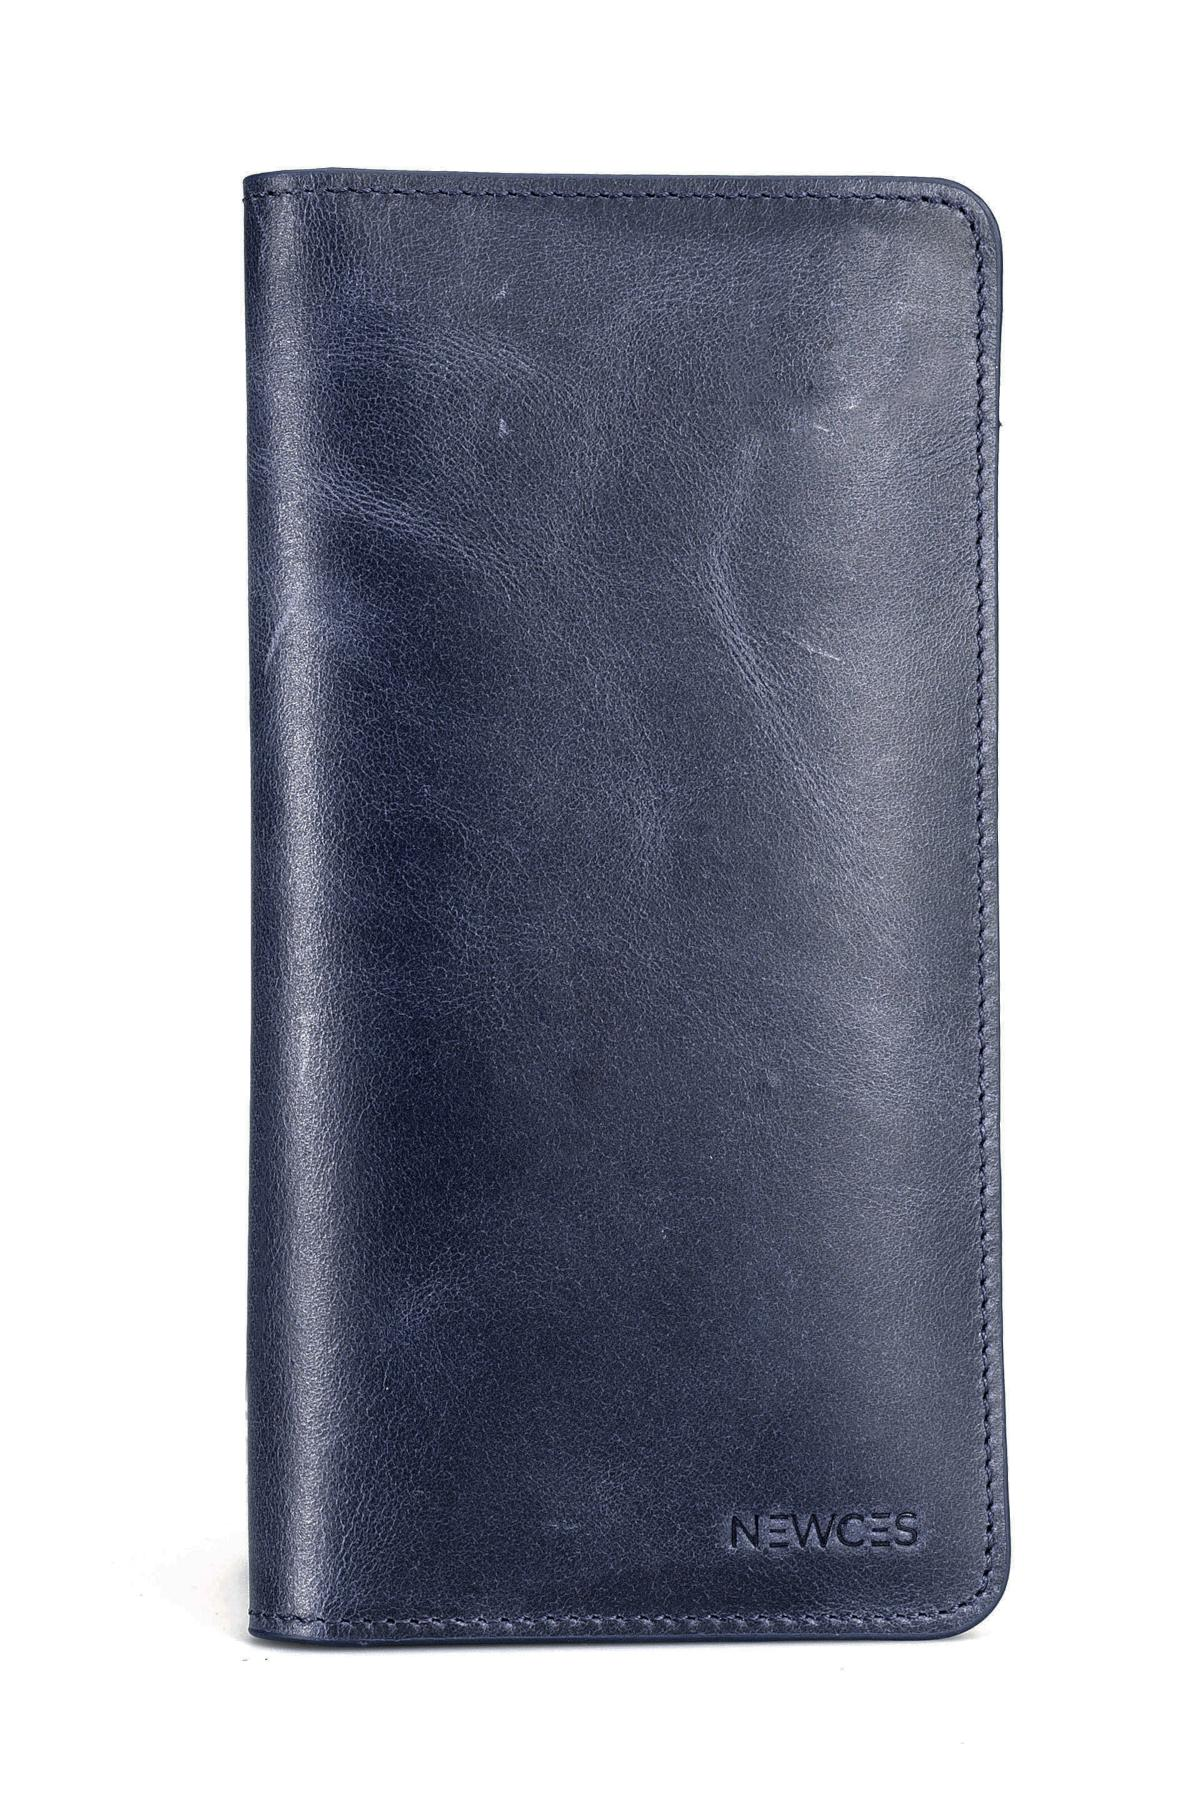 Unisex Card Holder Wallet with Mobile Phone Compartment newces-009-BN